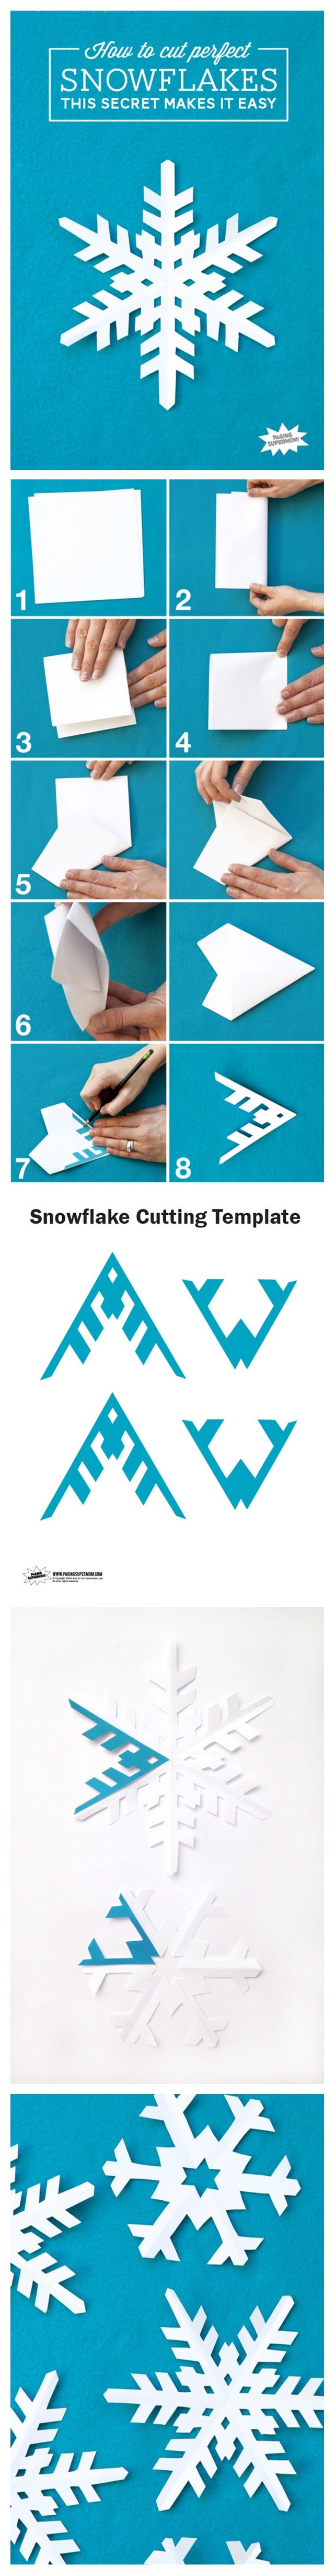 How to make the perfect snowflakes. This paper folding secret makes it easy!